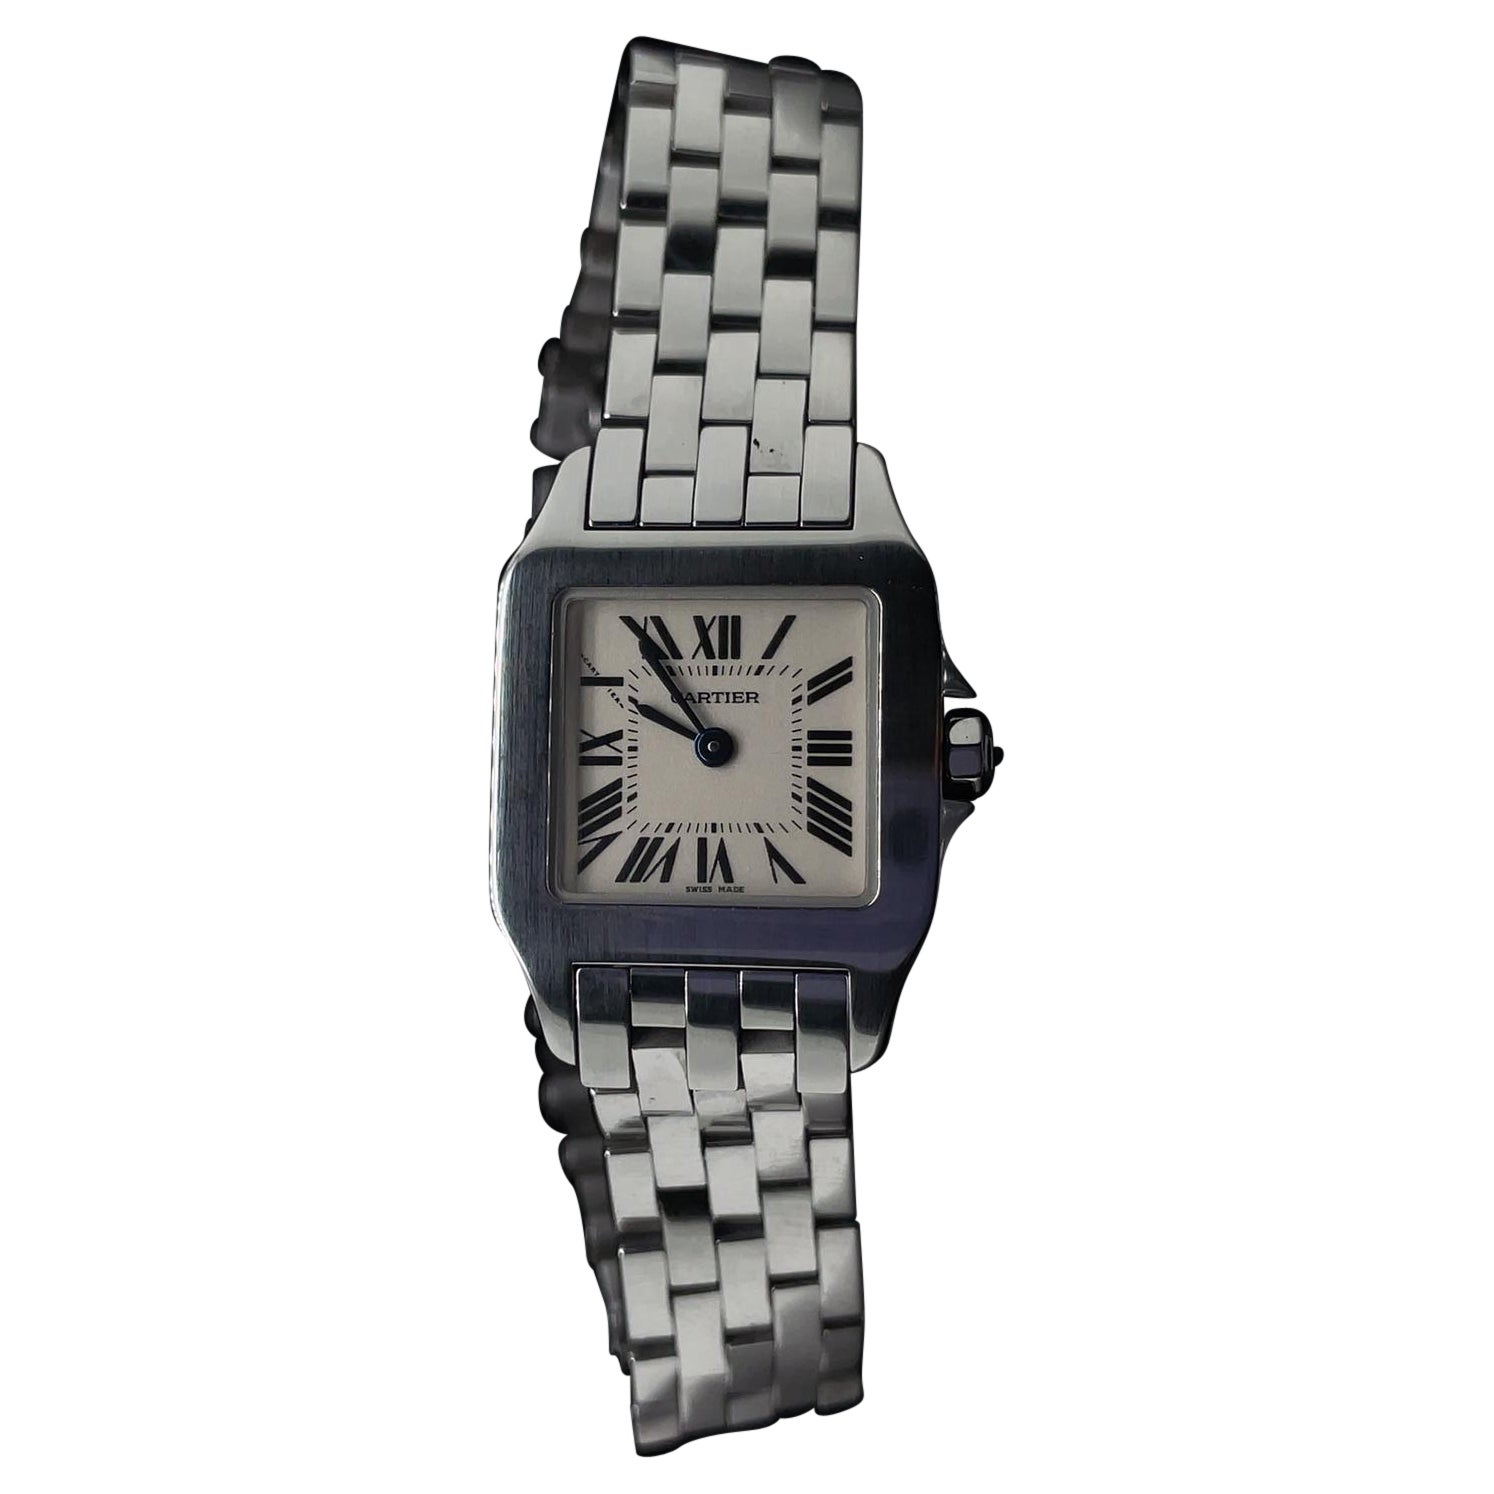 Cartier Santos Demoiselle Stainless Steel Ladies Watch 2698 with Box and Papers